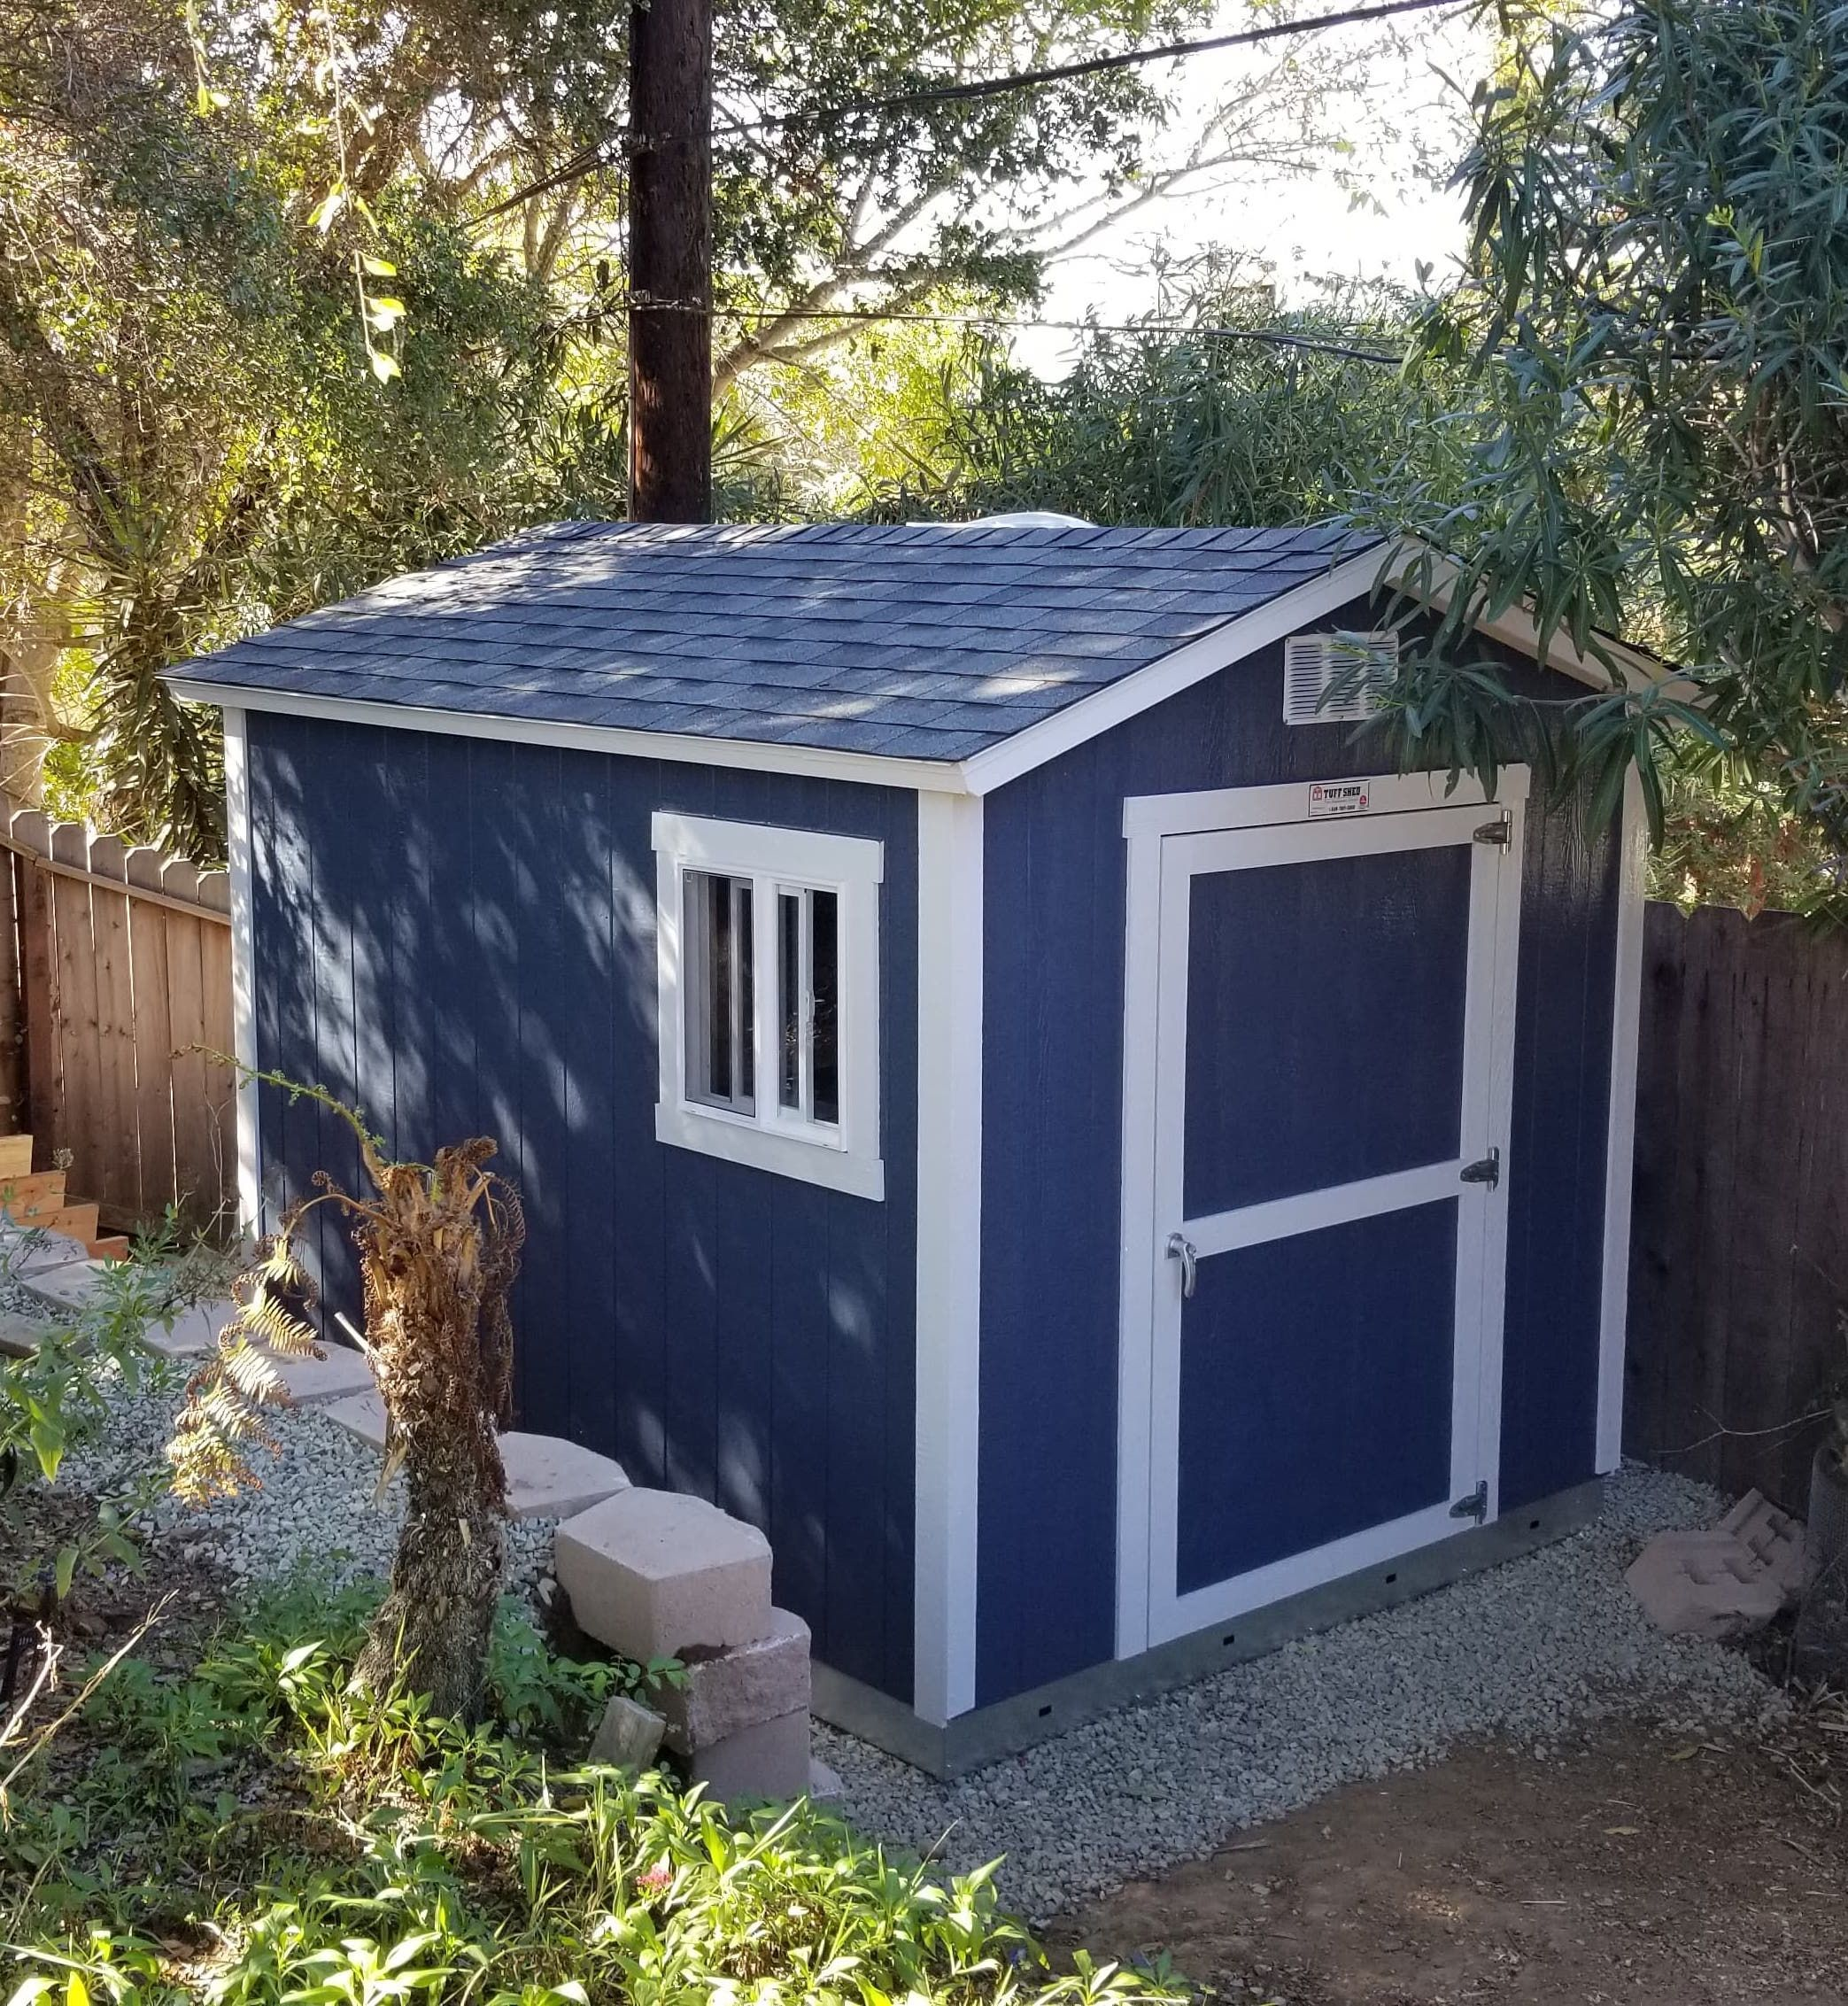 A Storage Shed Doesn T Need To Be Fancy To Be A Great Solution For Your Storage Needs Customize It Any Way You Choose And Ge Backyard Sheds Shed Backyard Shed